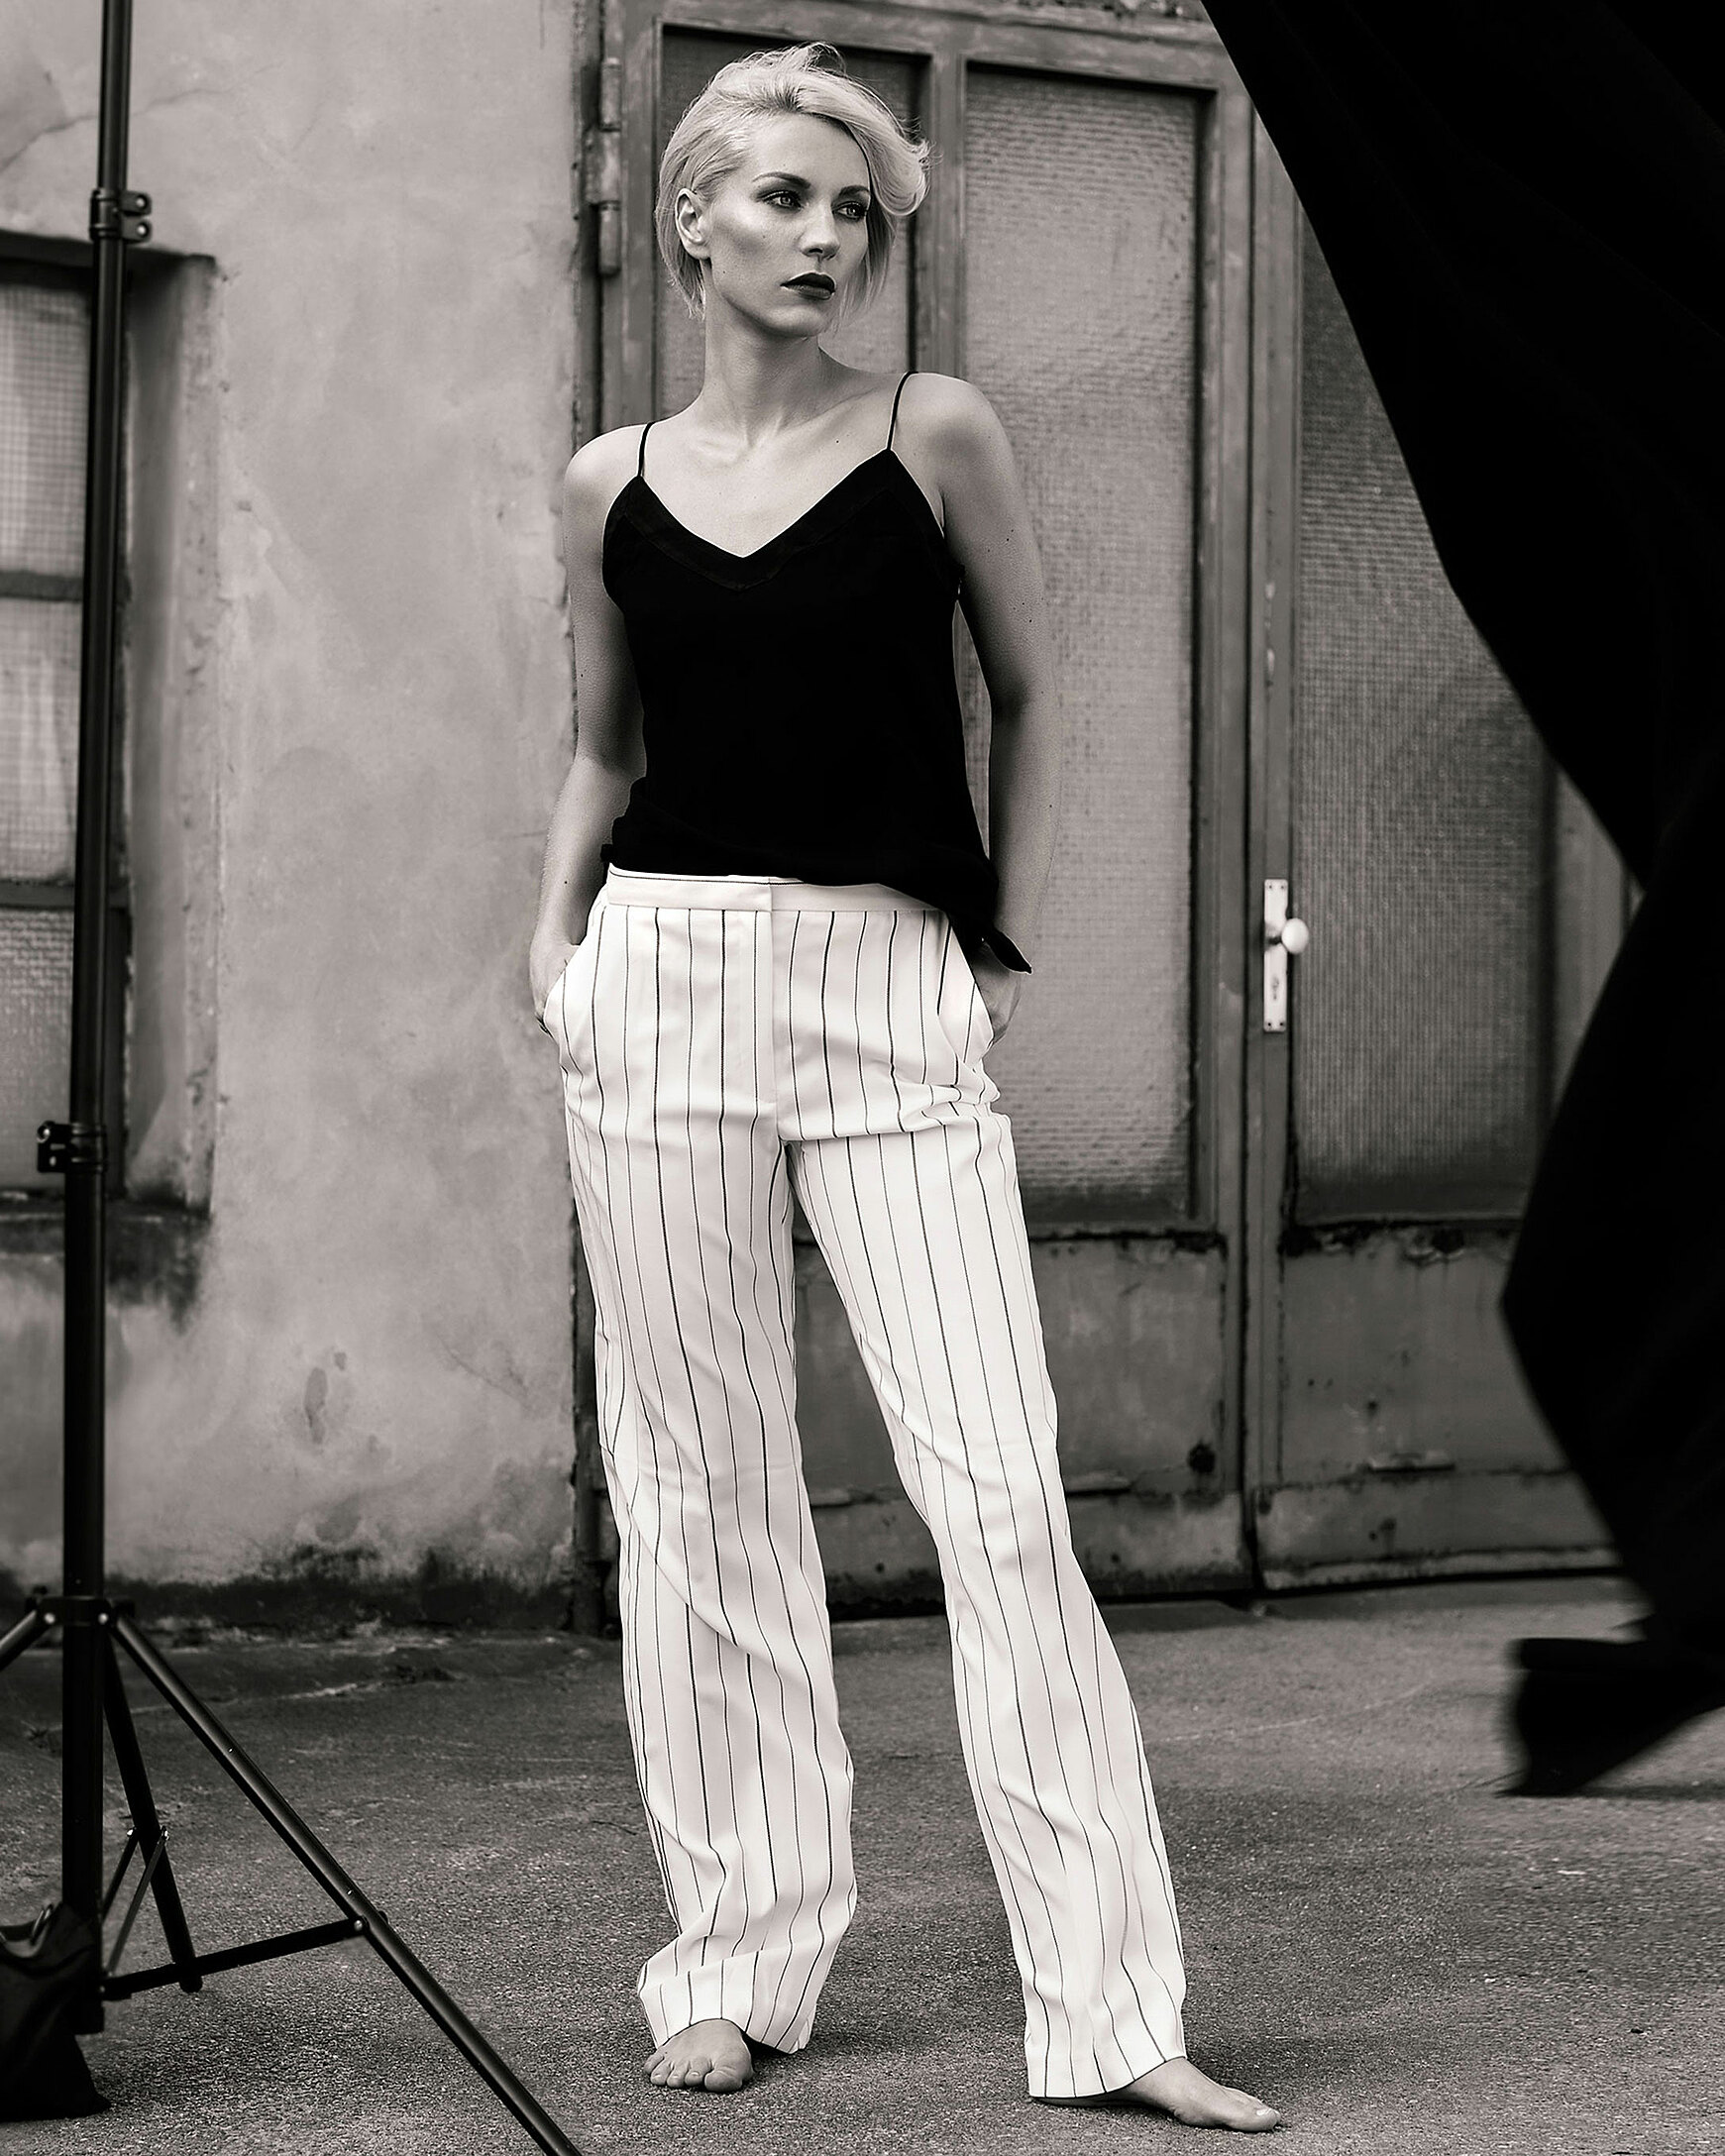 A black and white photo of a blonde woman in white long trousers with stripes and a black triangle top in front of a door in a backyard